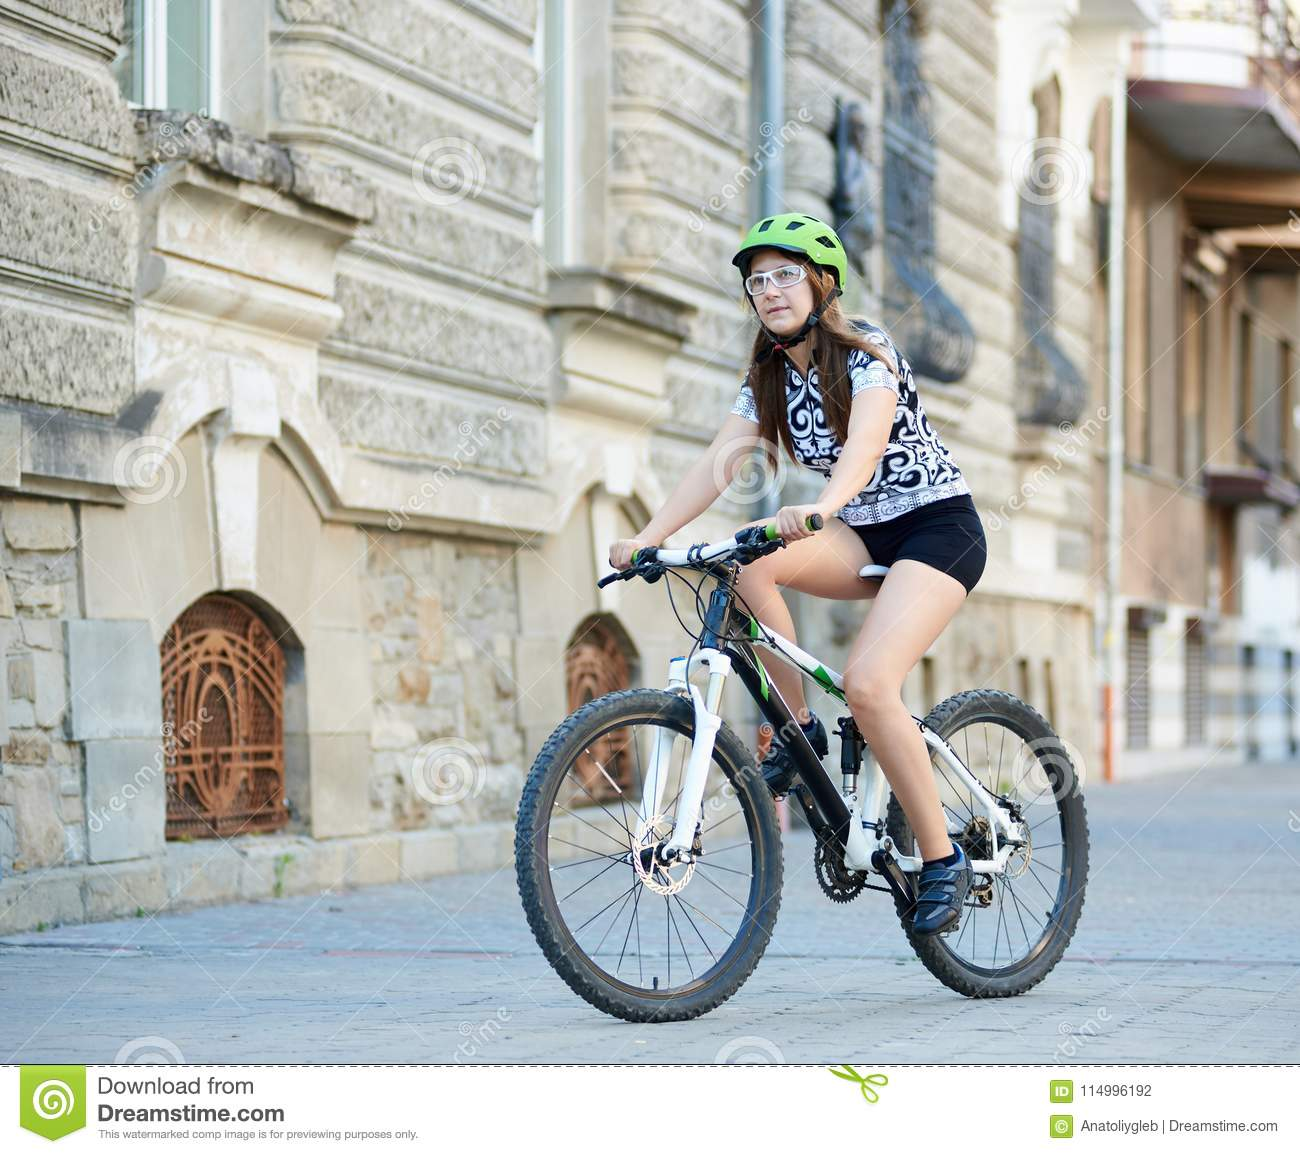 woman-cycling-down-paved-old-street-female-toned-cyclist-professional- clothing-helmet-riding-bike-streets-beautiful-114996192.jpg 5cda919d4